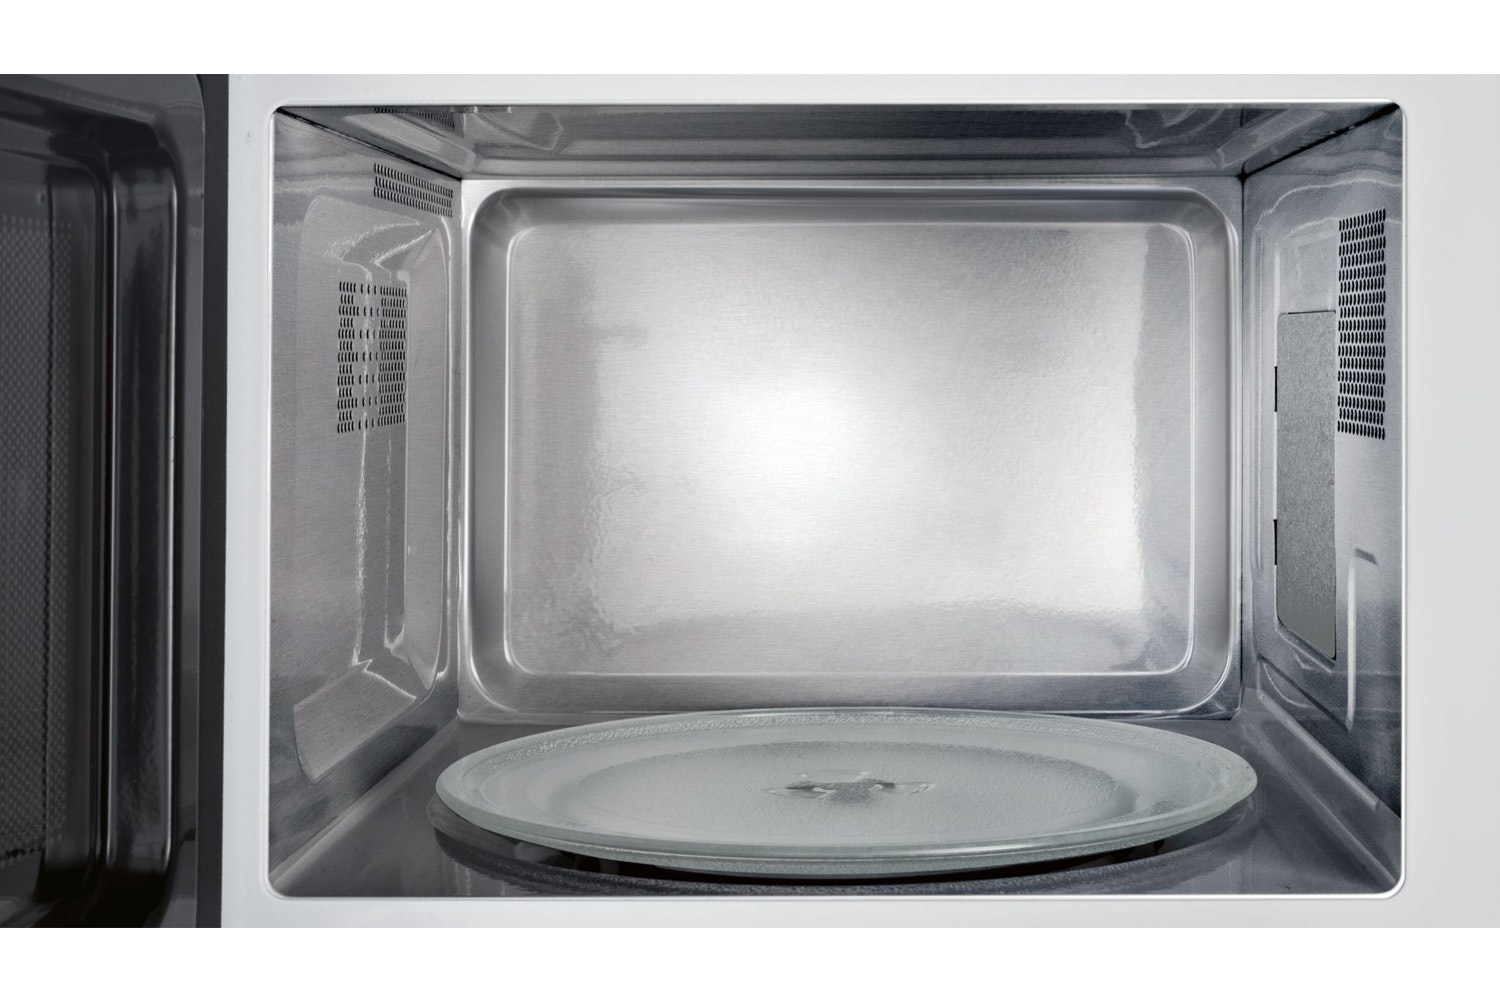 Neff 17L 800W Built In Microwave | H53W50N3GB | Stainless Steel